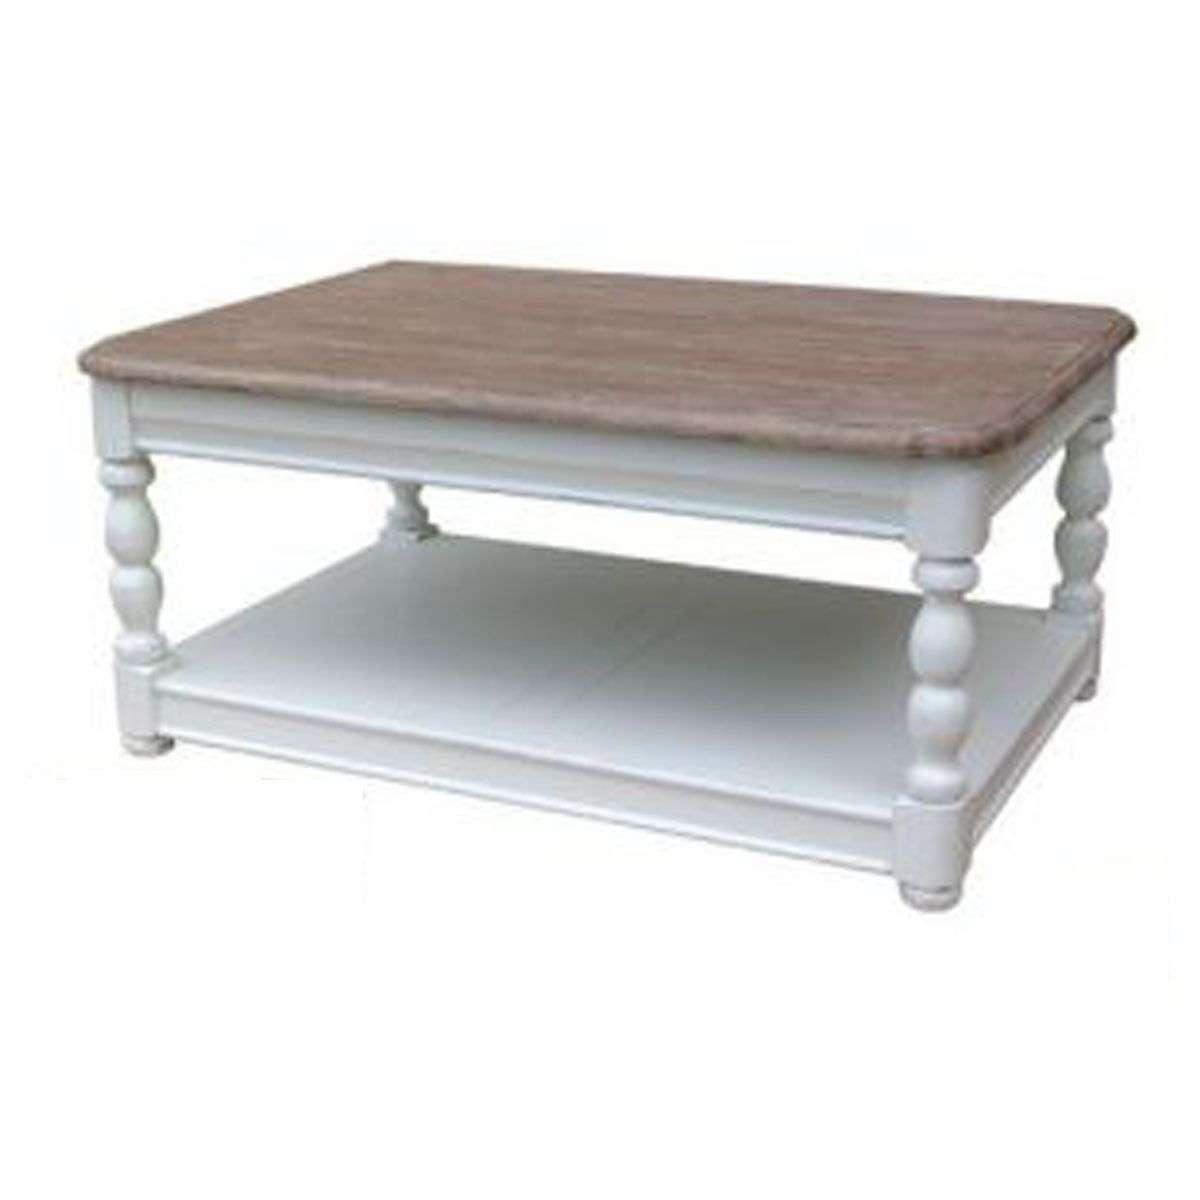 Coffee Tables Ideas: Cottage Style Coffee Table Ideas Cottage Pertaining To Most Up To Date White Cottage Style Coffee Tables (View 3 of 20)